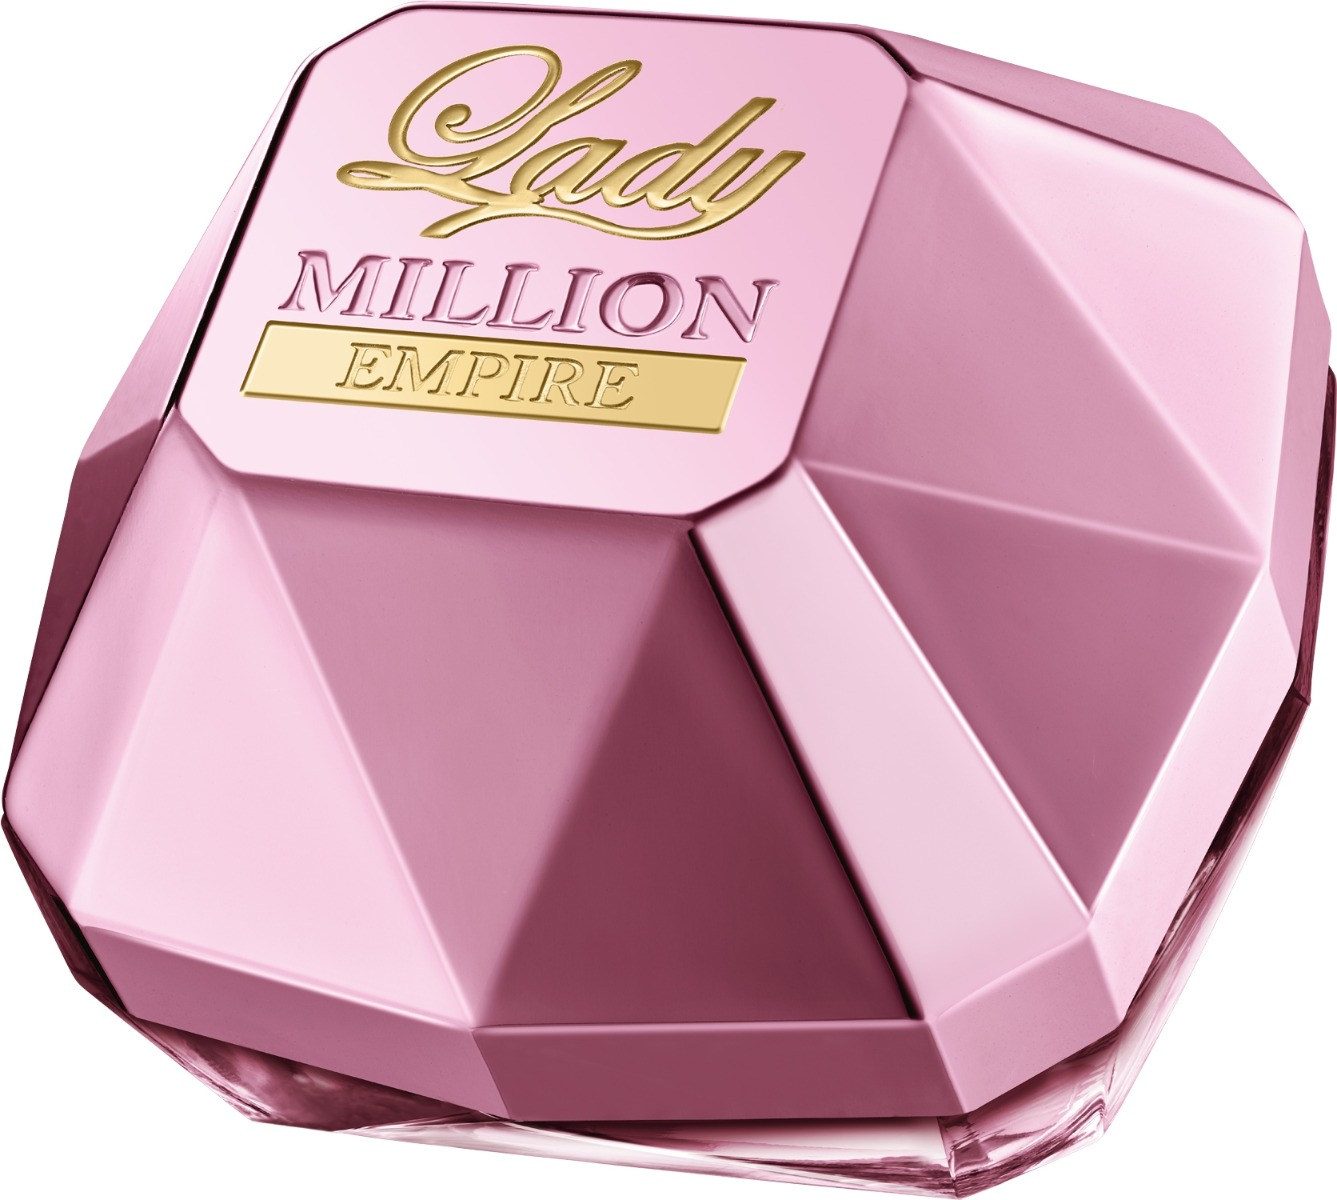 Paco Rabanne Lady Million Empire (W) edp 30ml